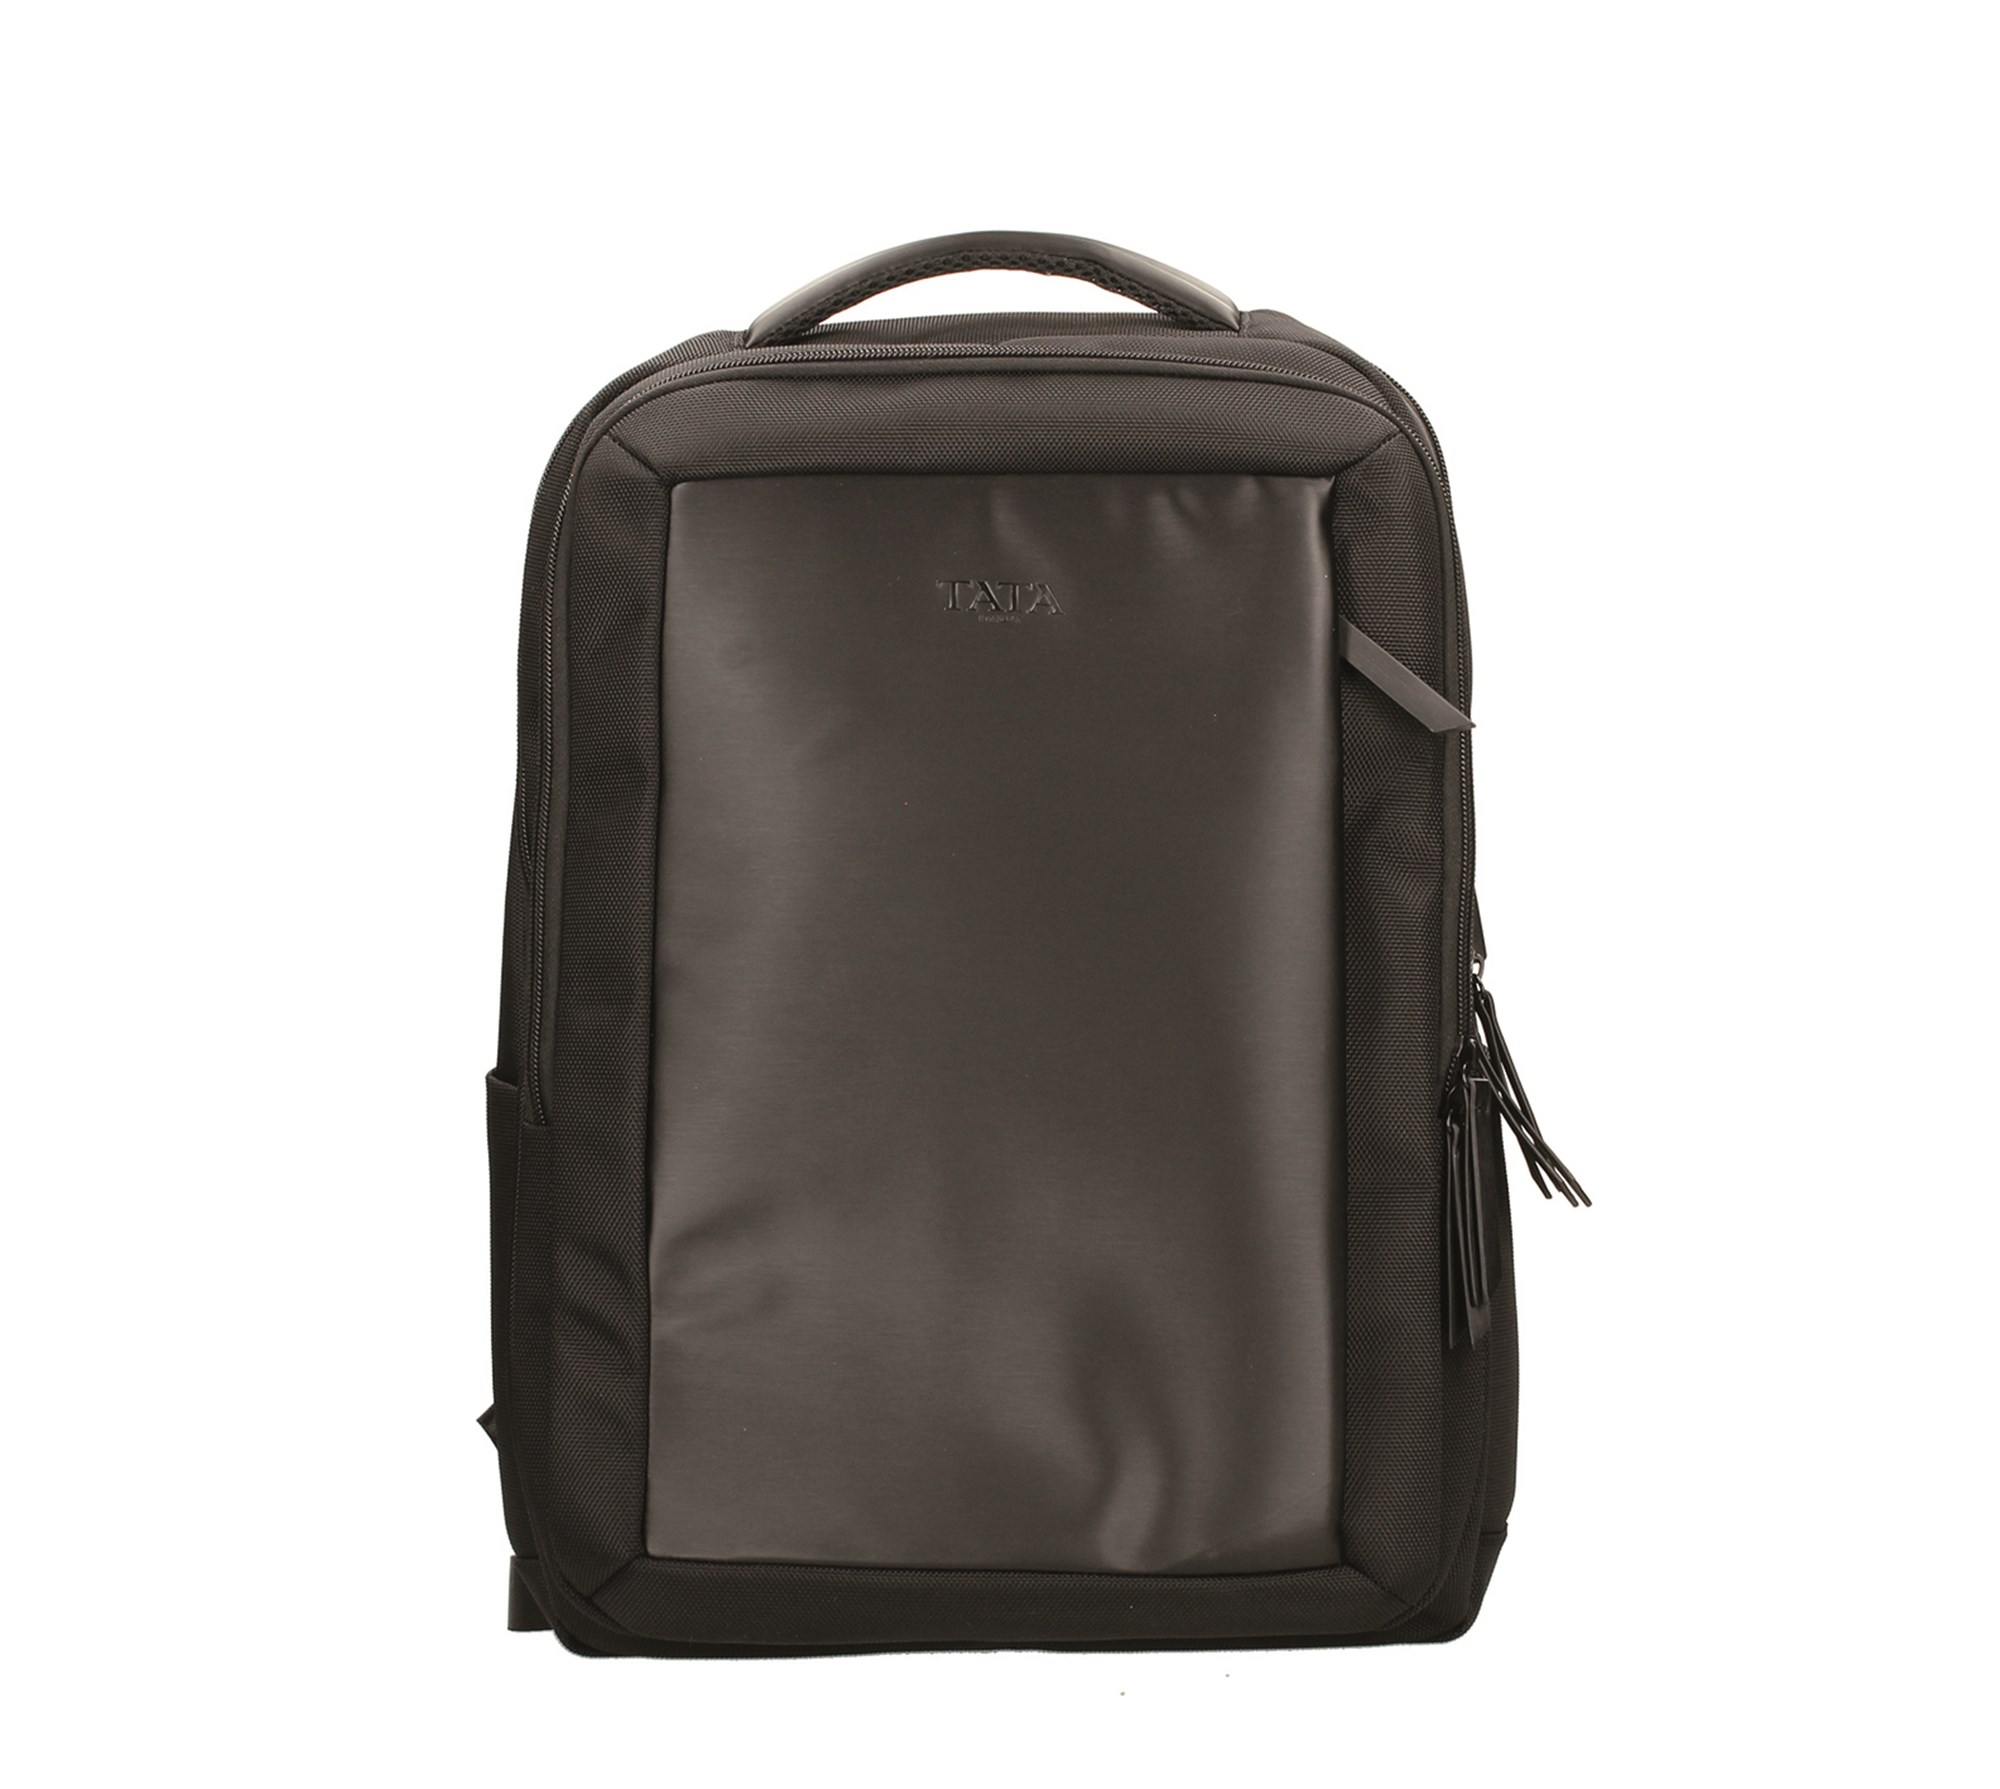 Tata Italia Accessories Man Bags MA403